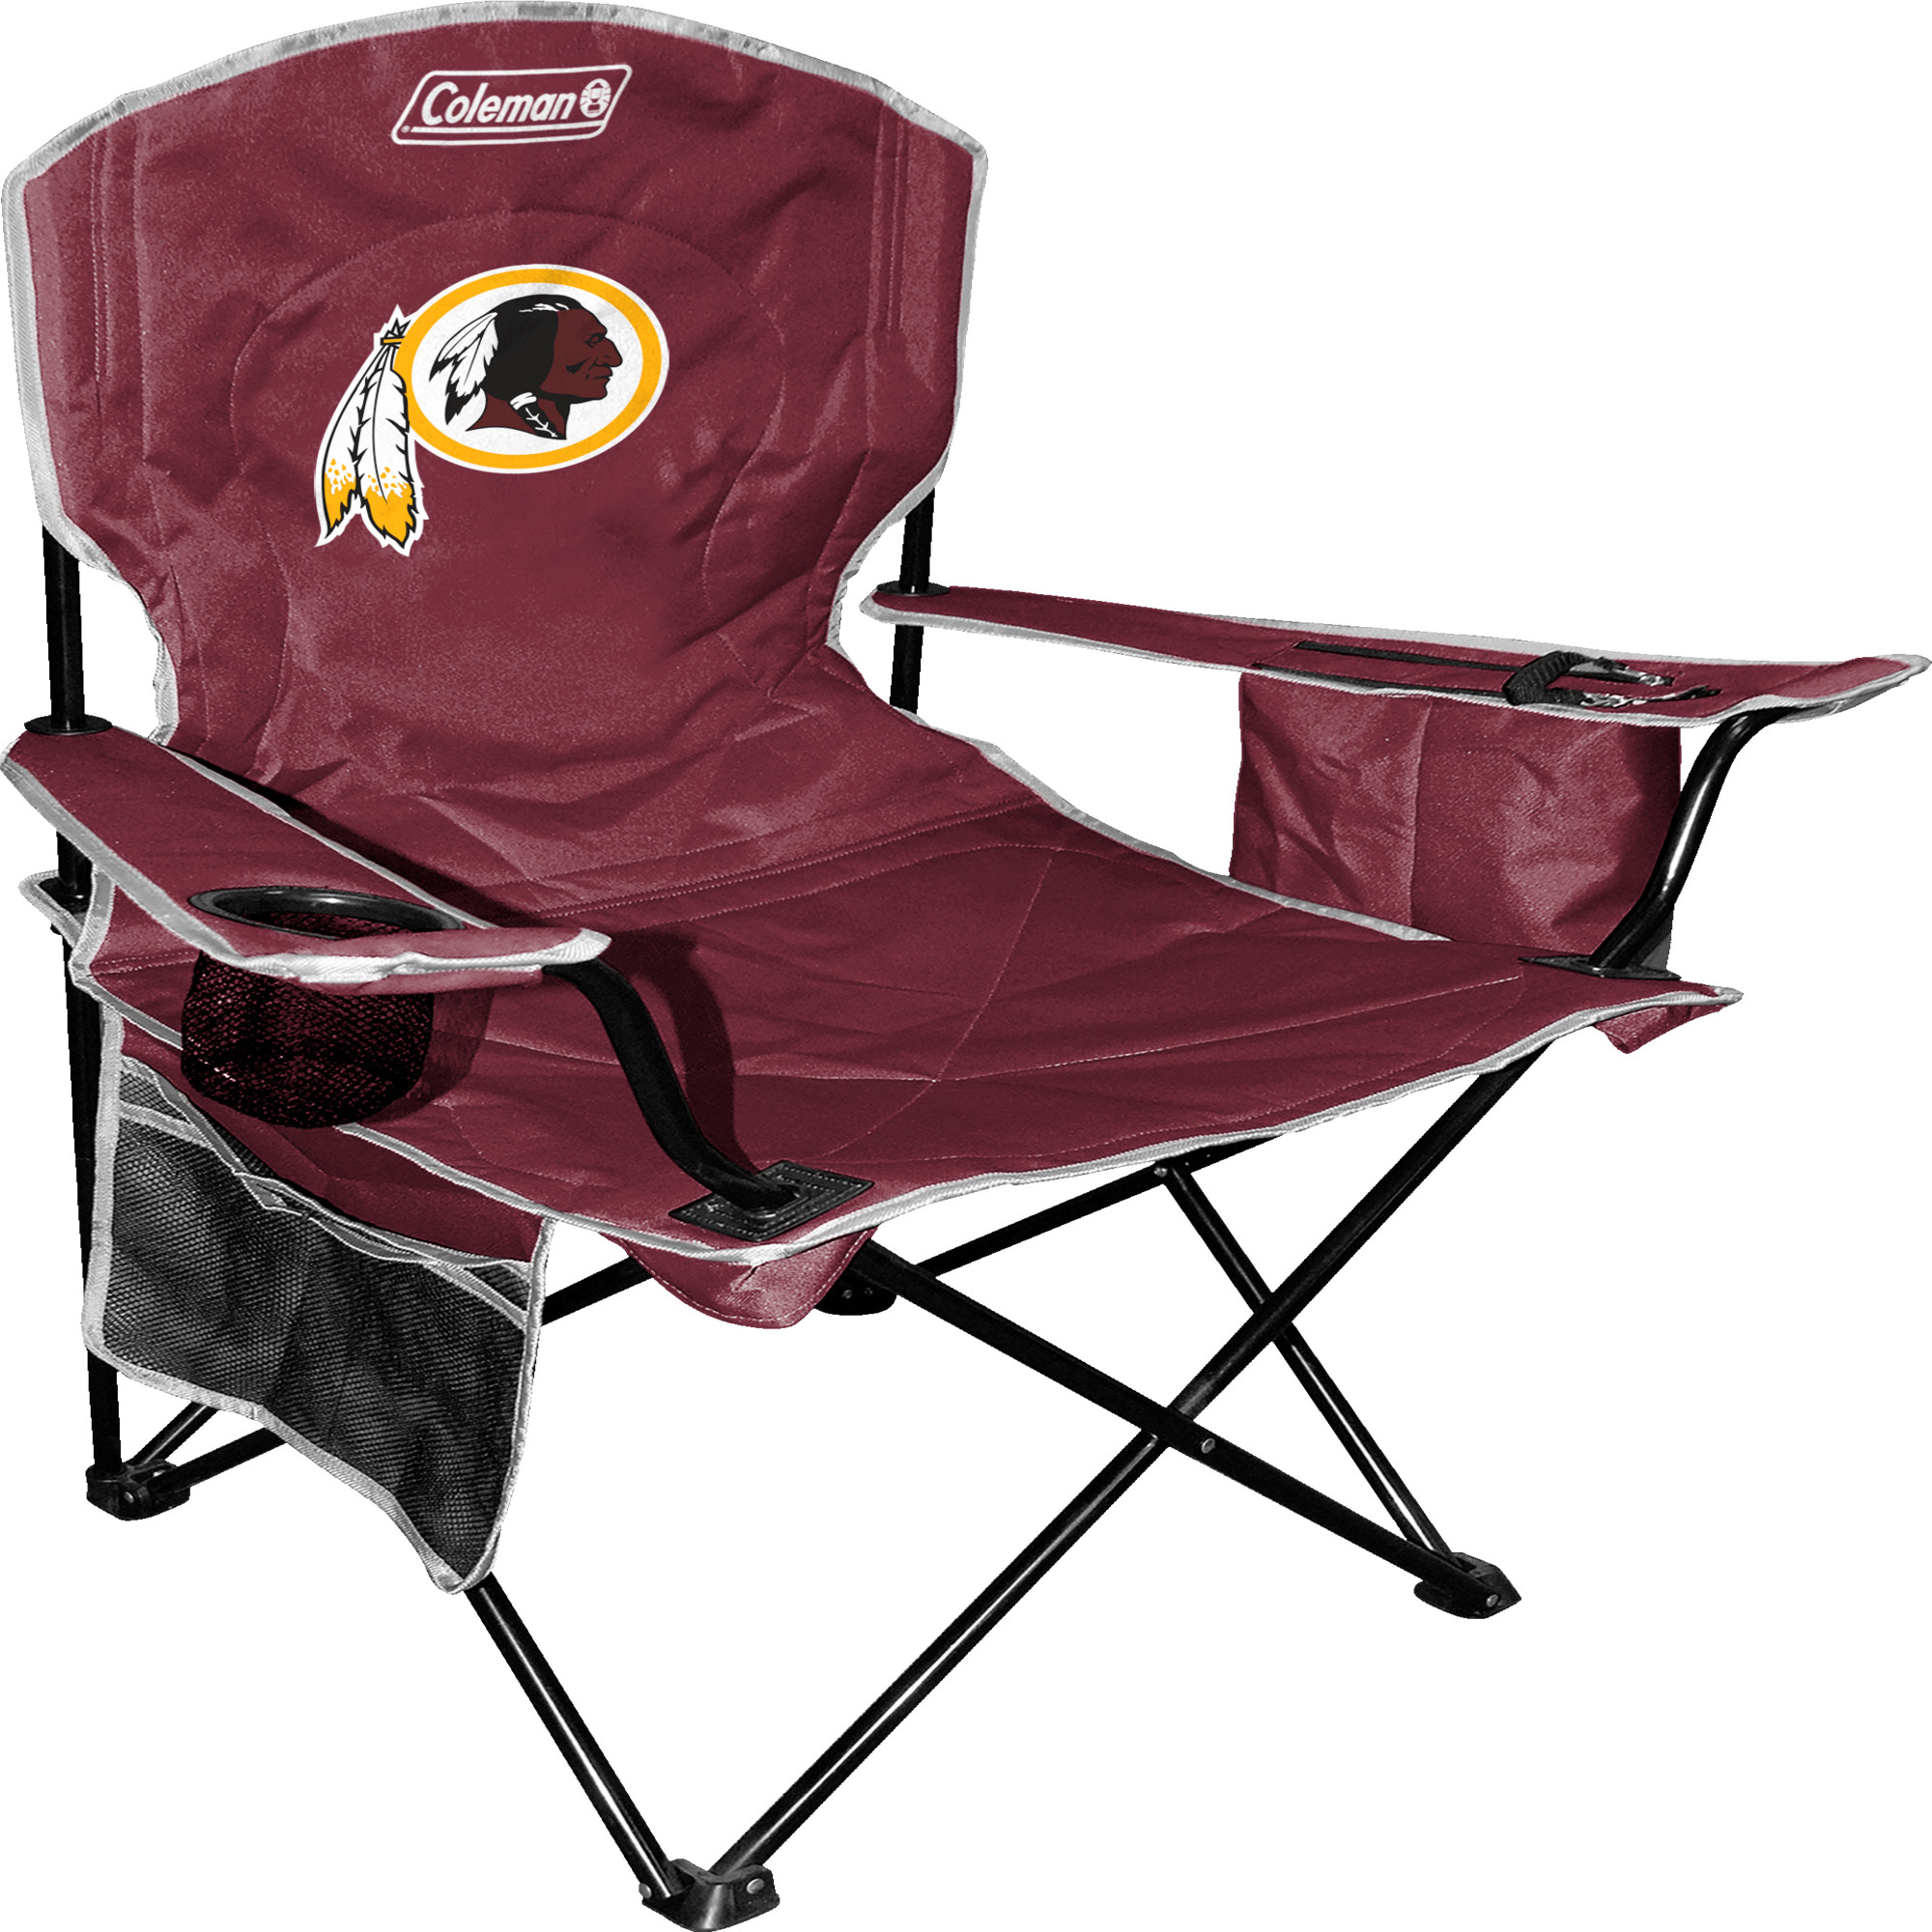 Coleman - NFL XL Cooler Quad Chair, Washington Redskins